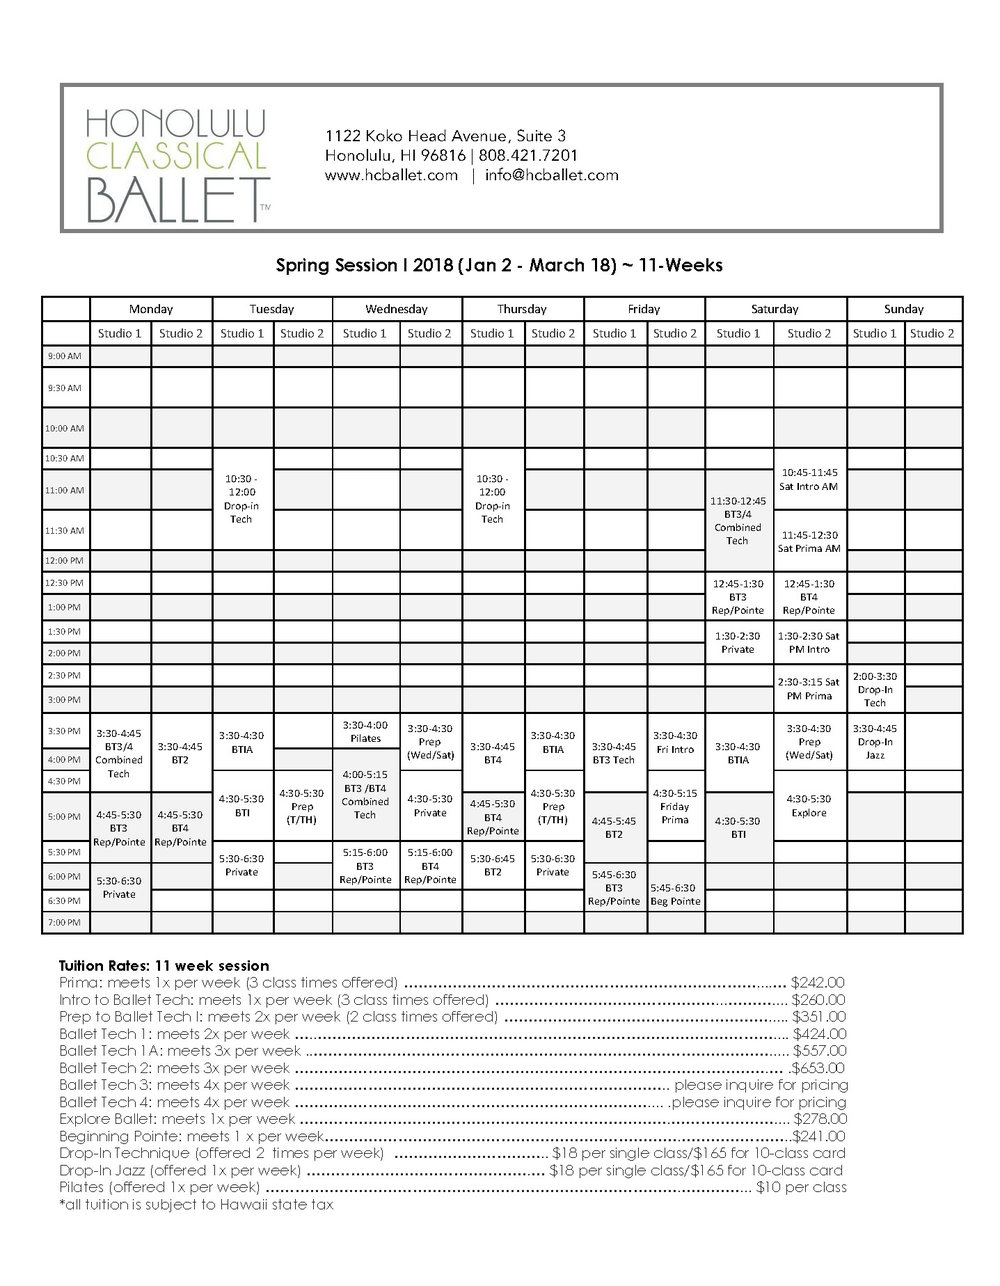 HCBallet_Spring Session 1 2018_Schedule and Tuition.jpg